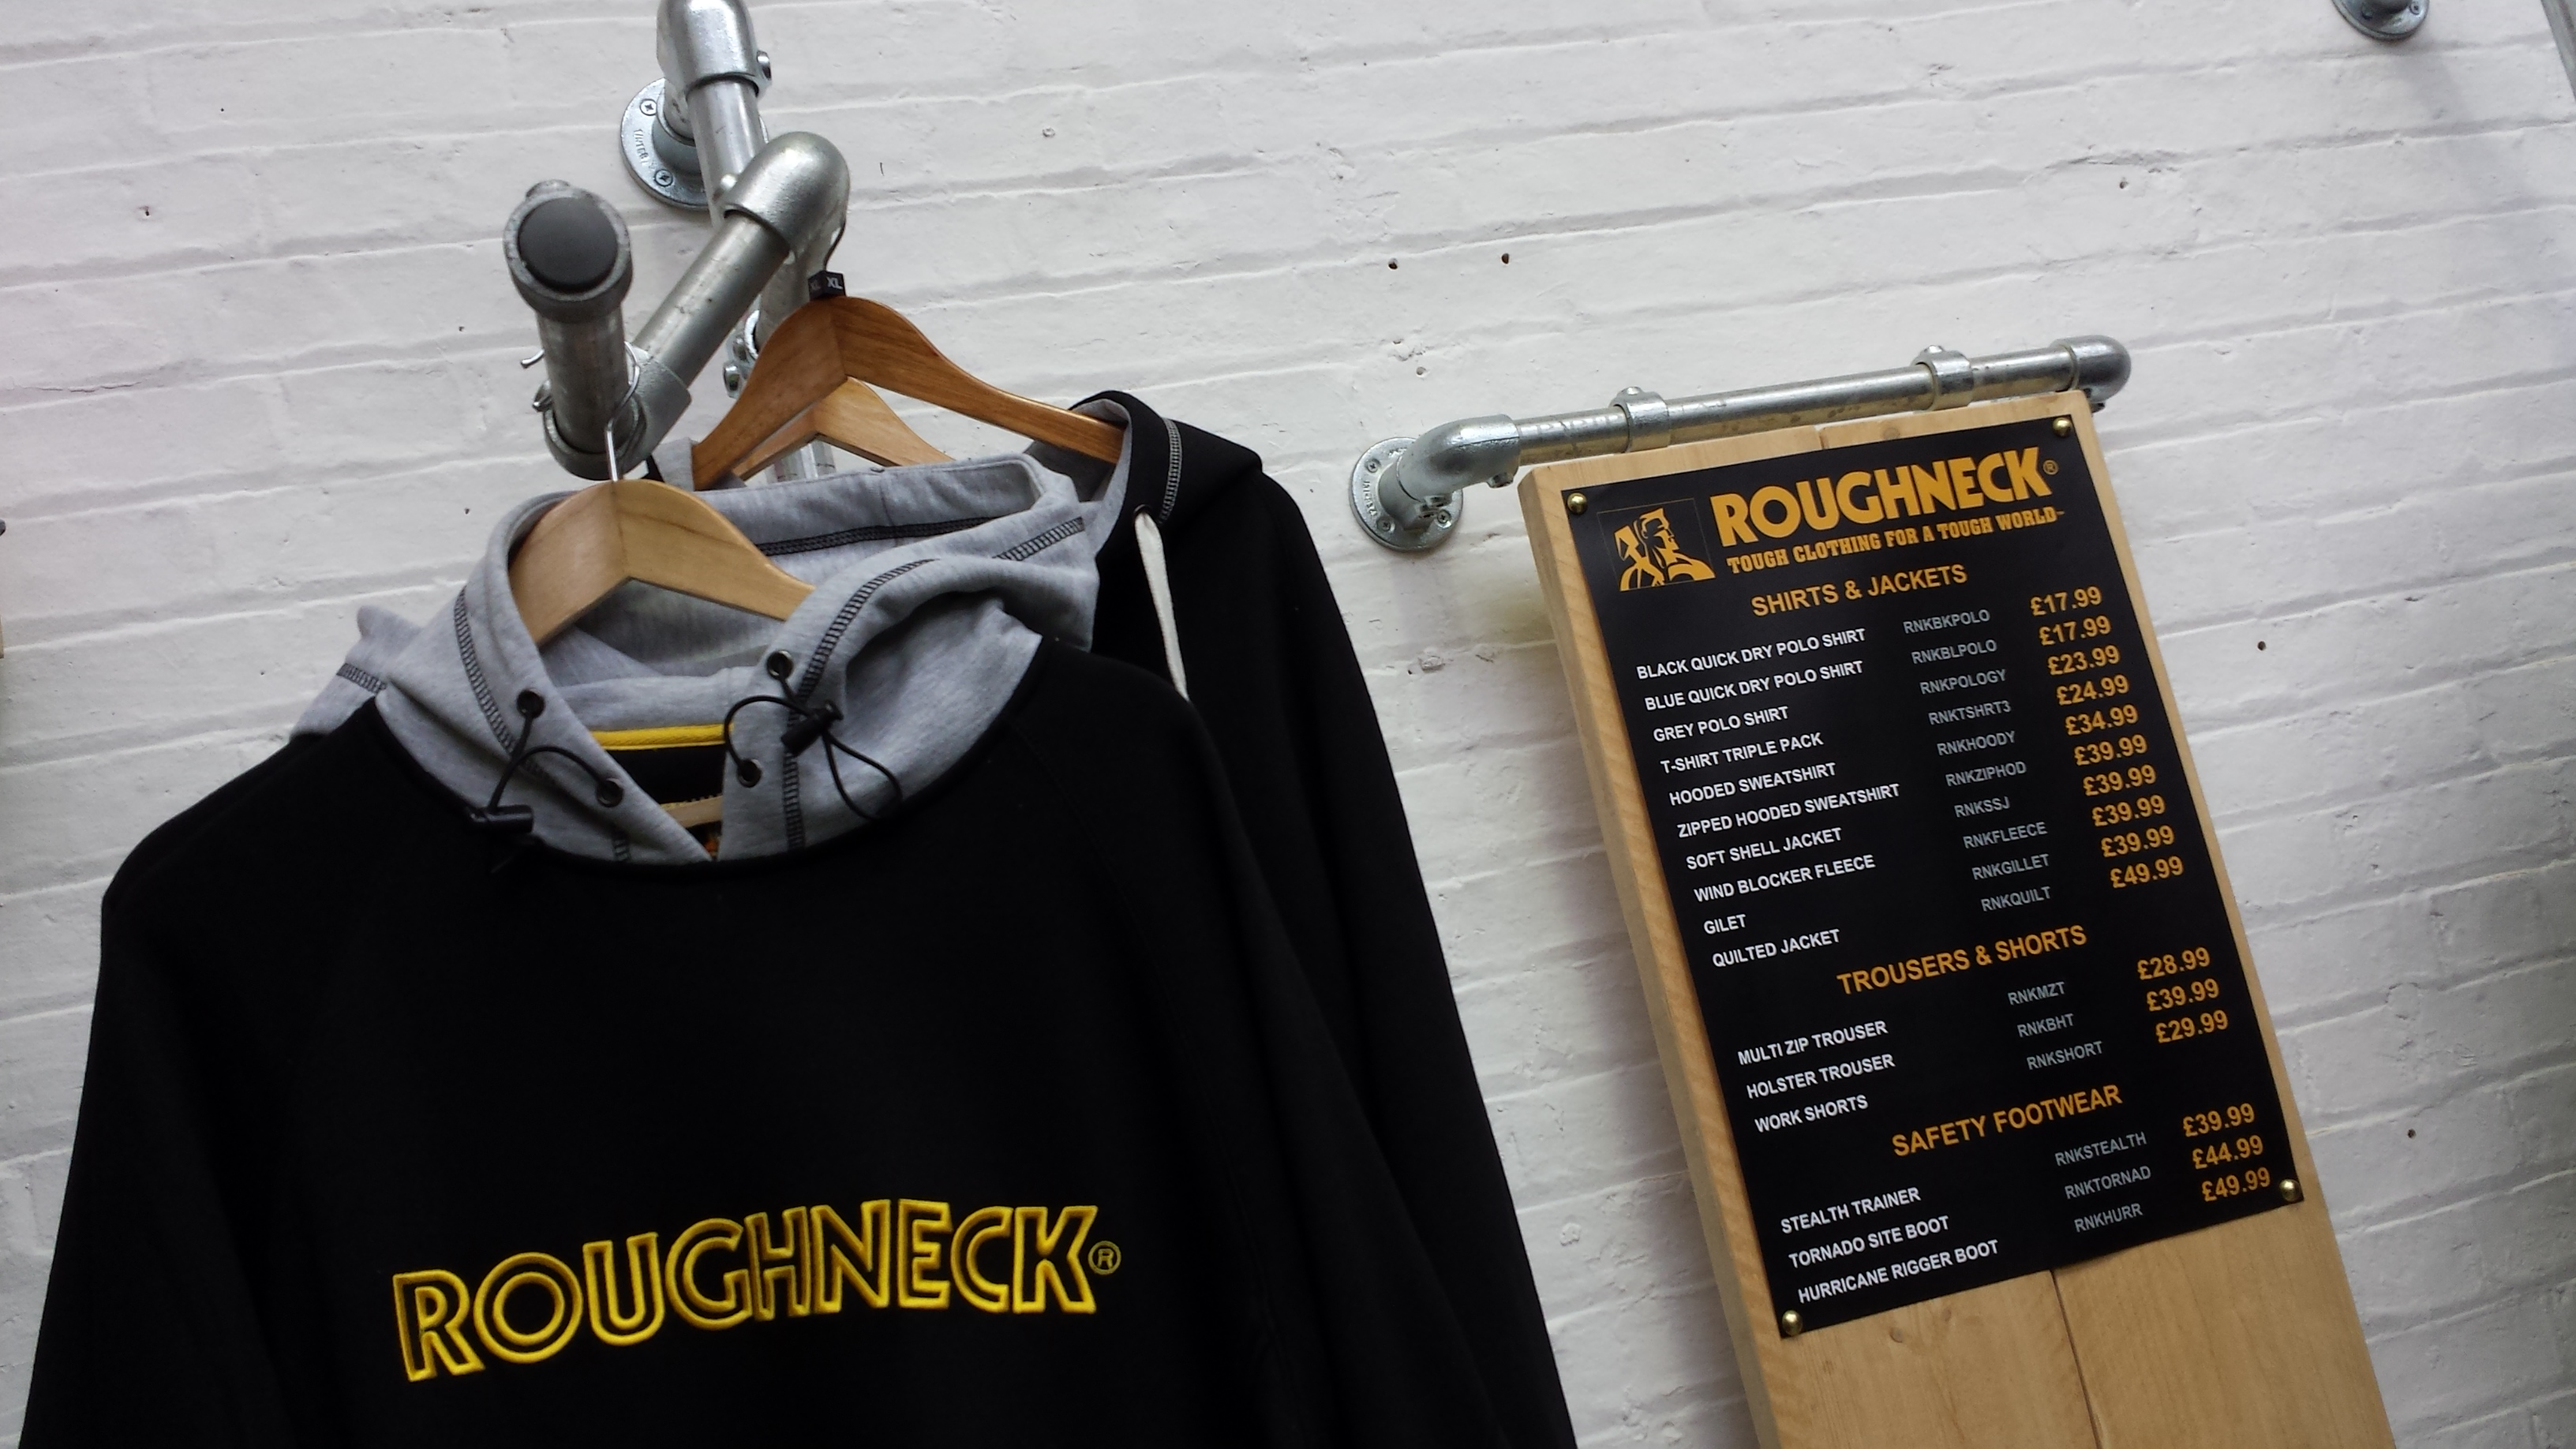 Roughneck - Our New Range of Workwear